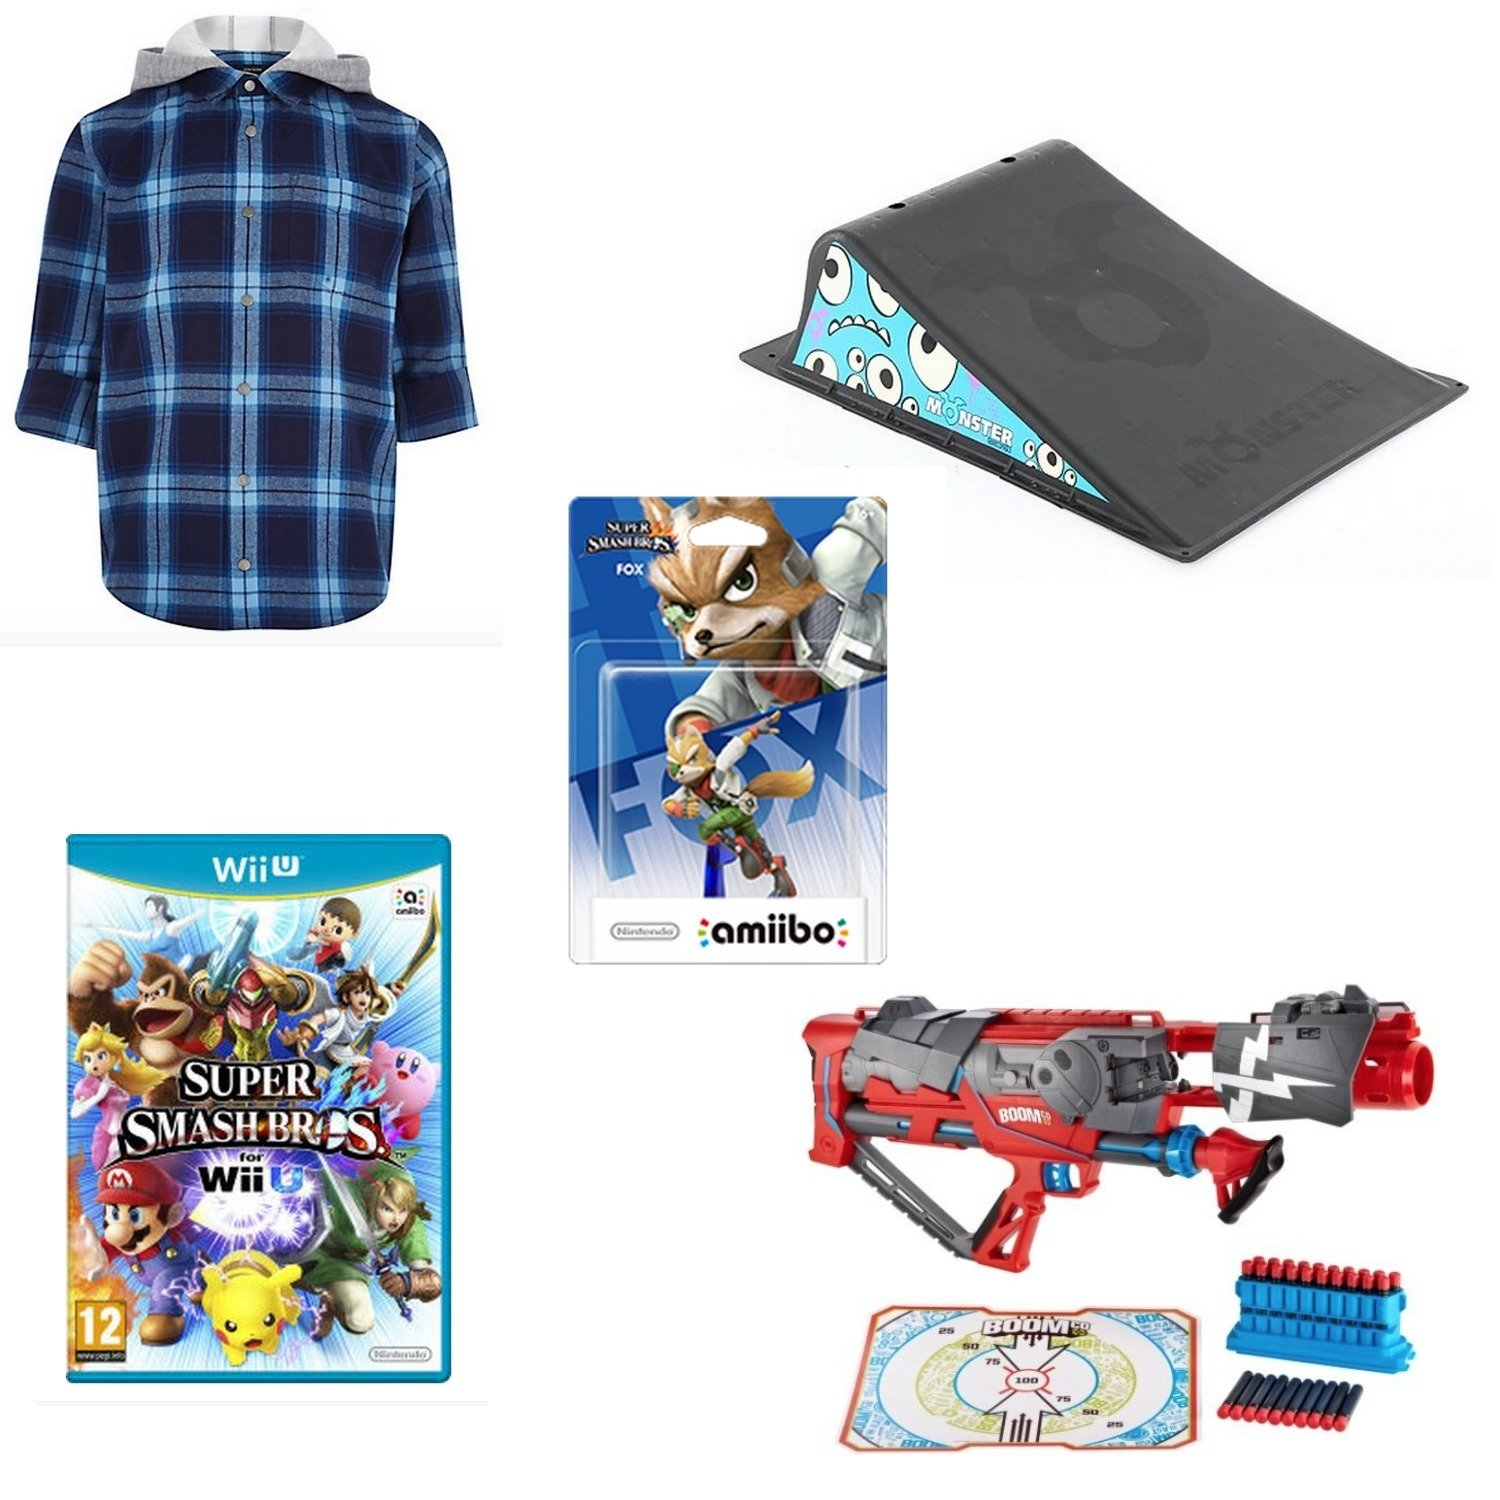 10 Best 10 Year Old Boy Christmas Gift Ideas christmas gifts for 10 year old boys family four fun 5 2021